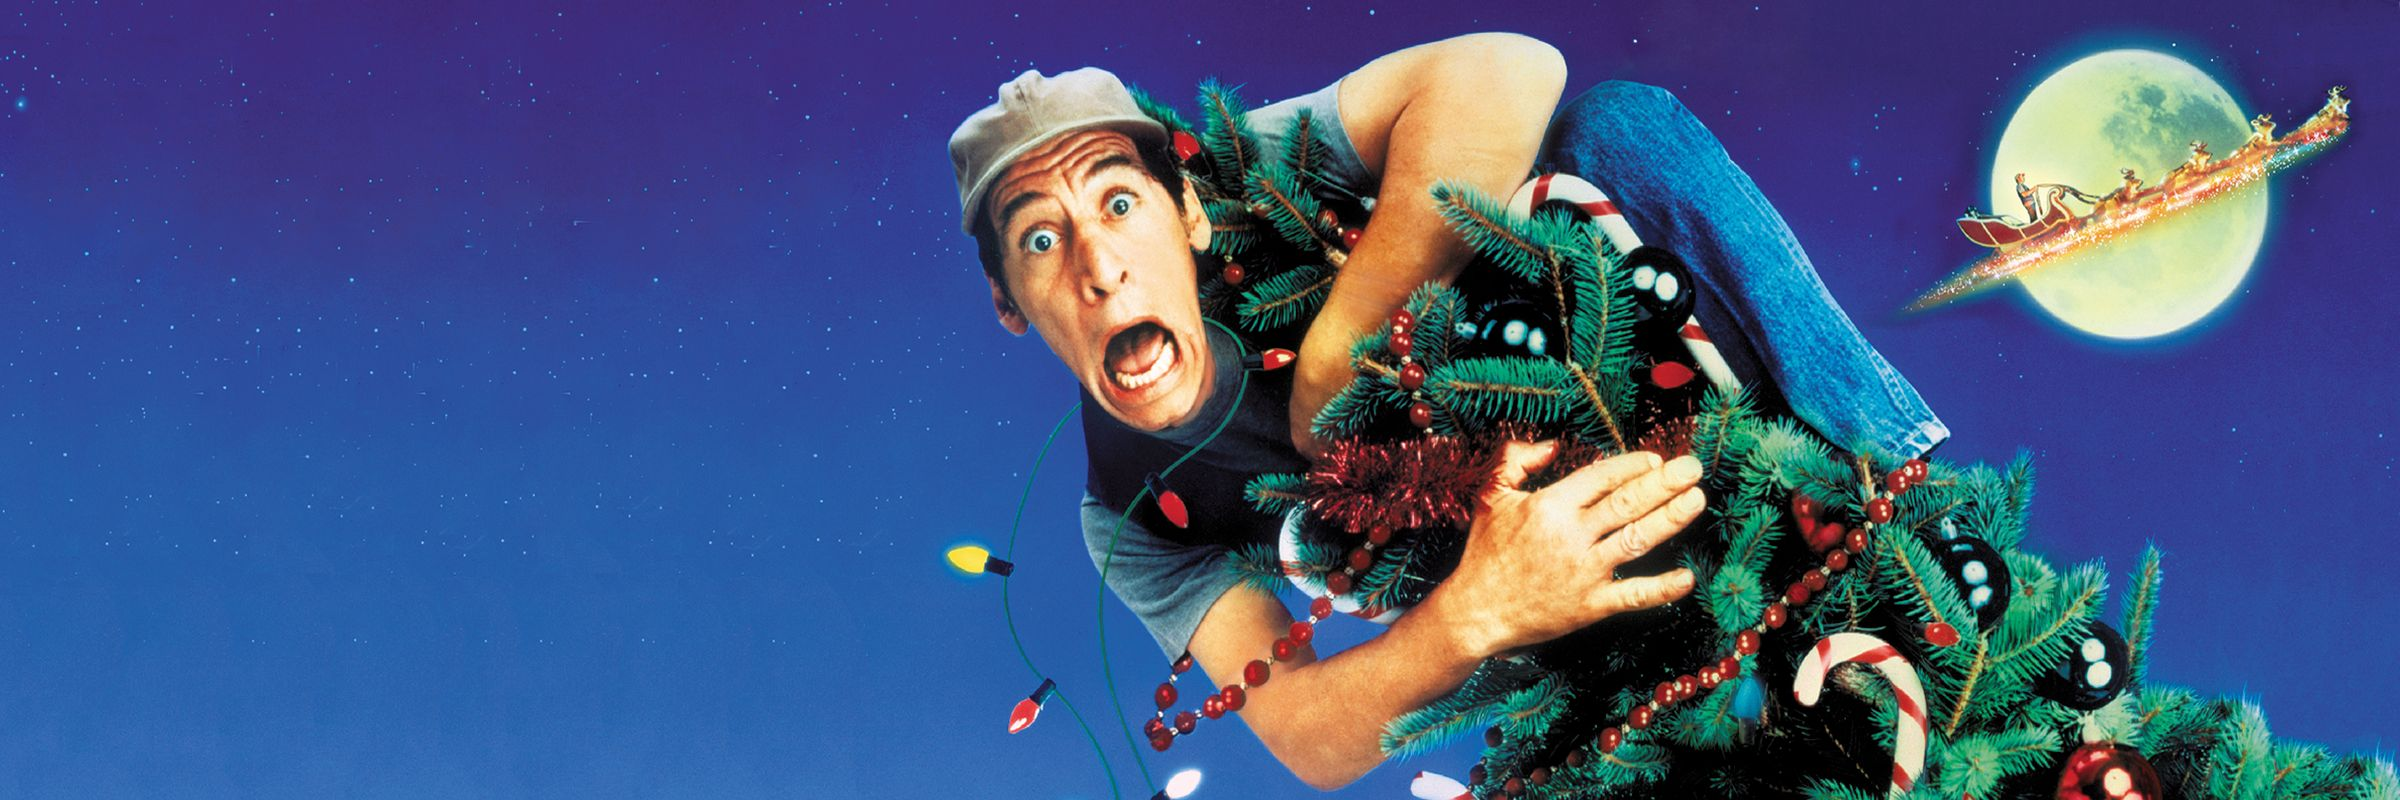 Ernest Saves Christmas Elves.Ernest Saves Christmas Full Movie Movies Anywhere